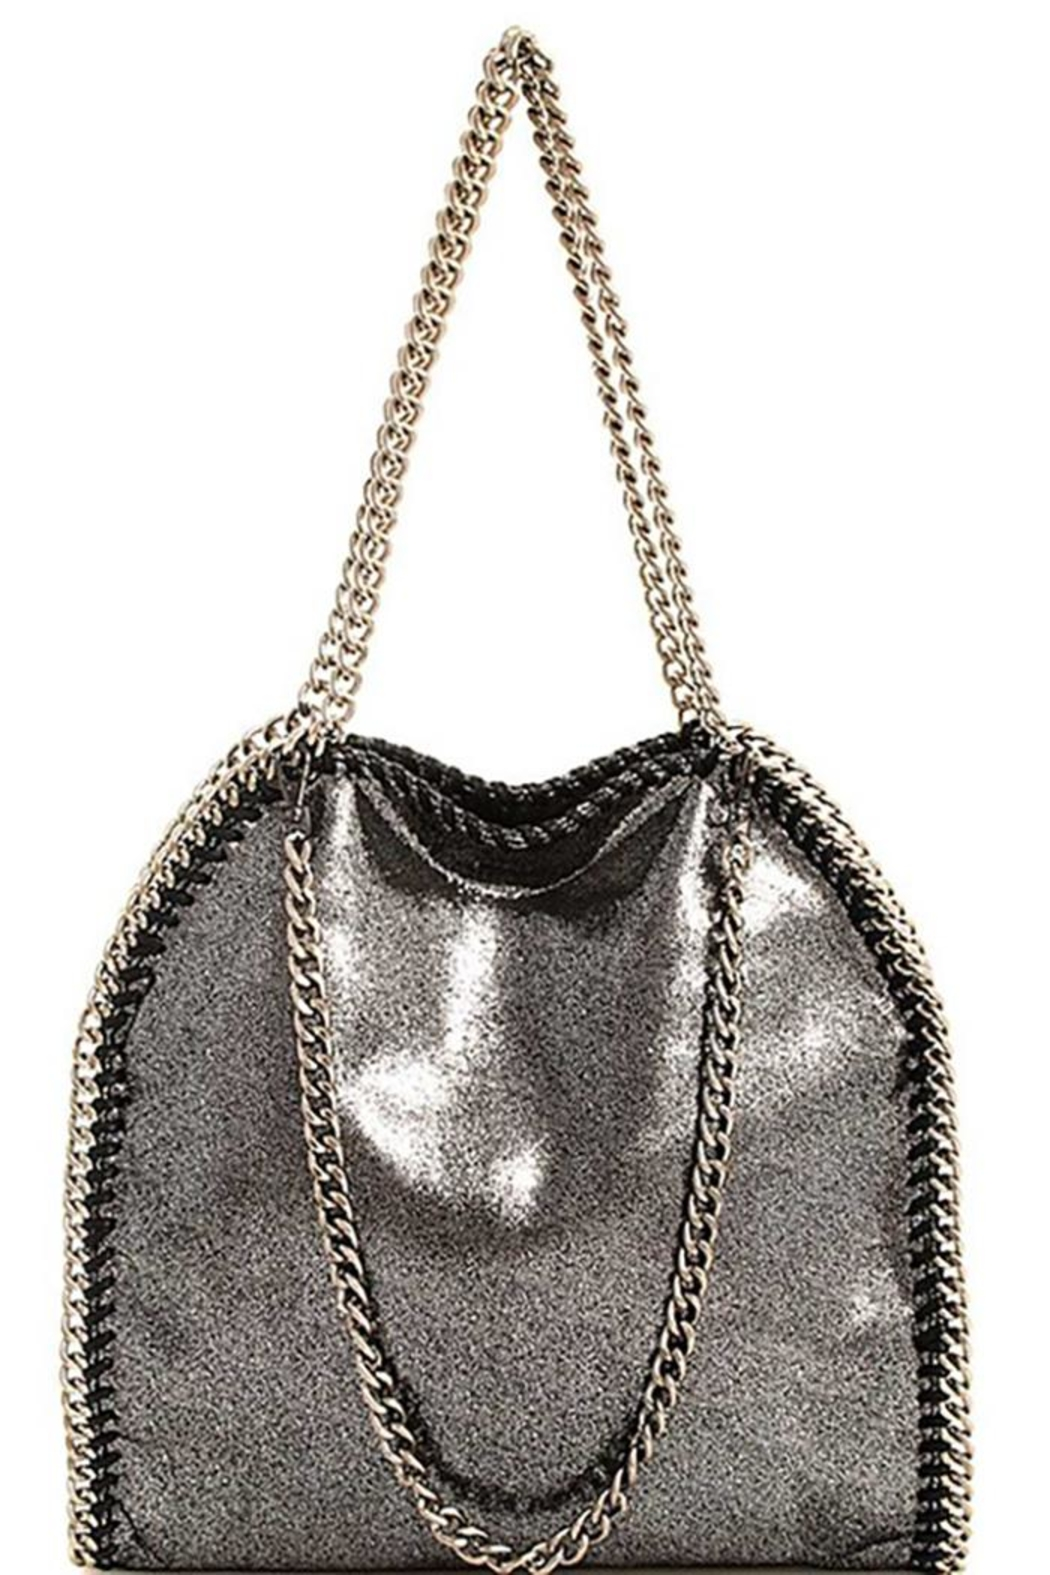 Nadya's Closet Designer Chain-Accent Tote - Front Cropped Image